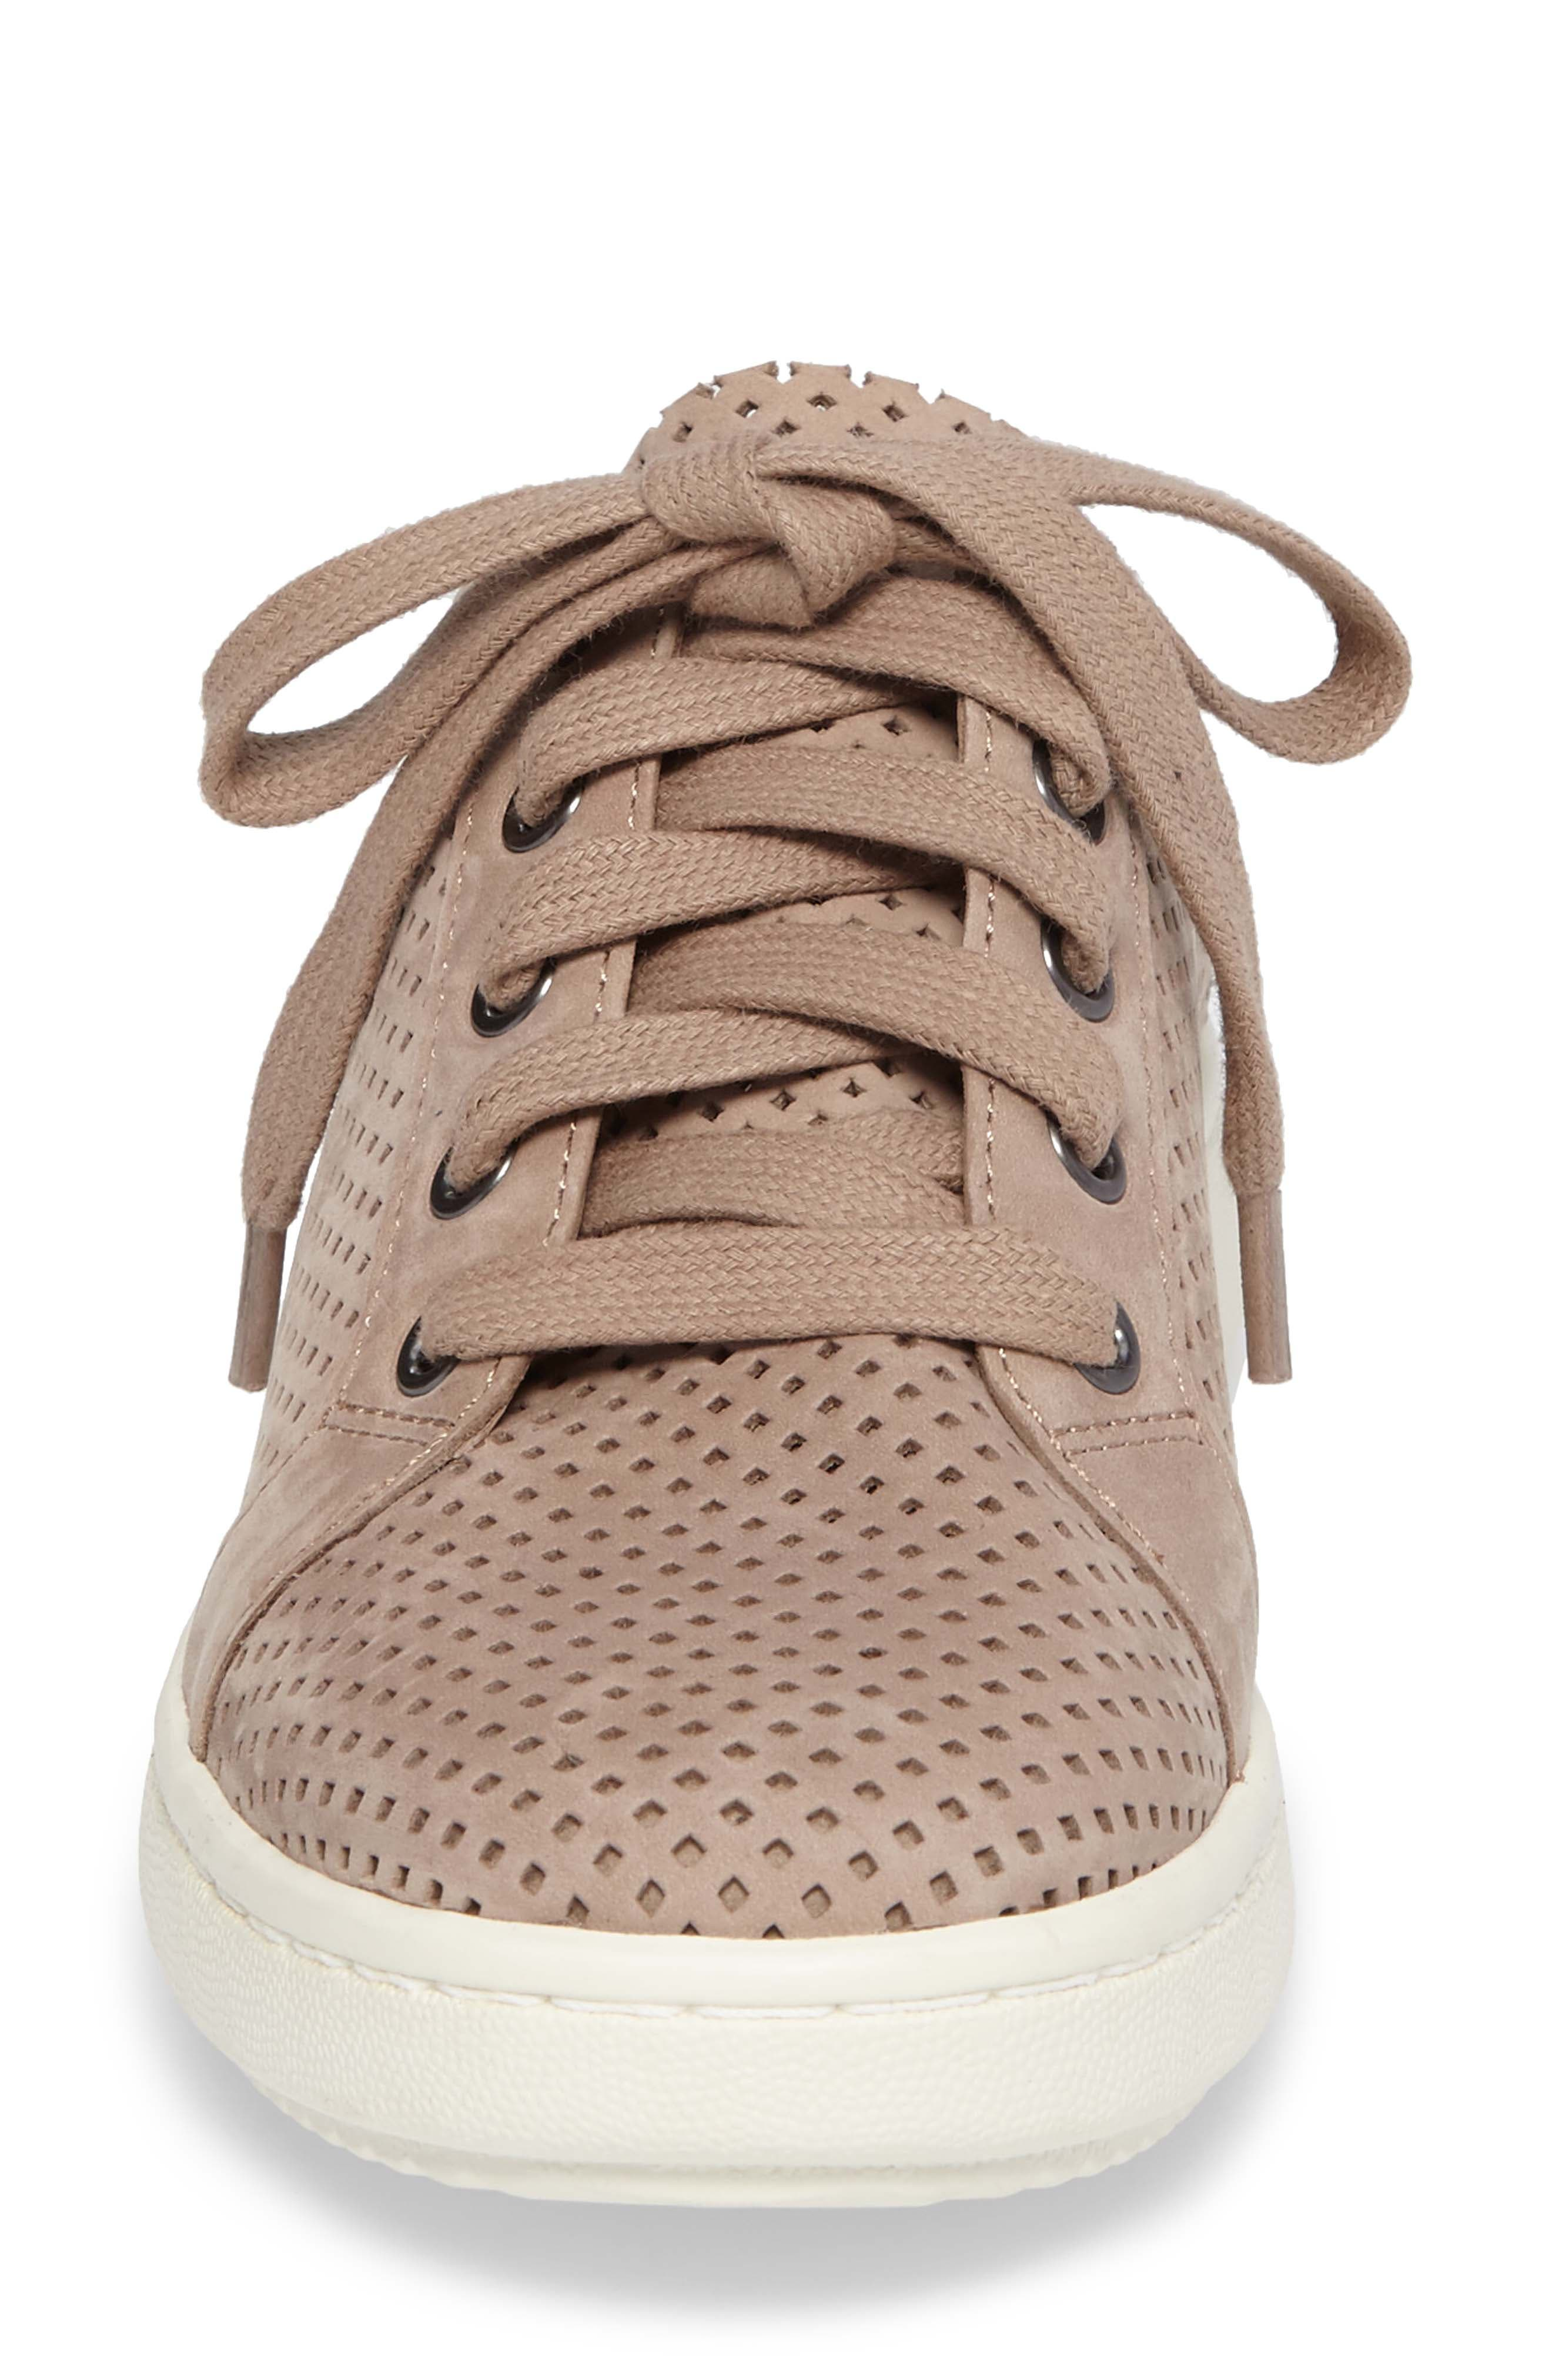 Clifton Perforated Sneaker,                             Alternate thumbnail 4, color,                             250